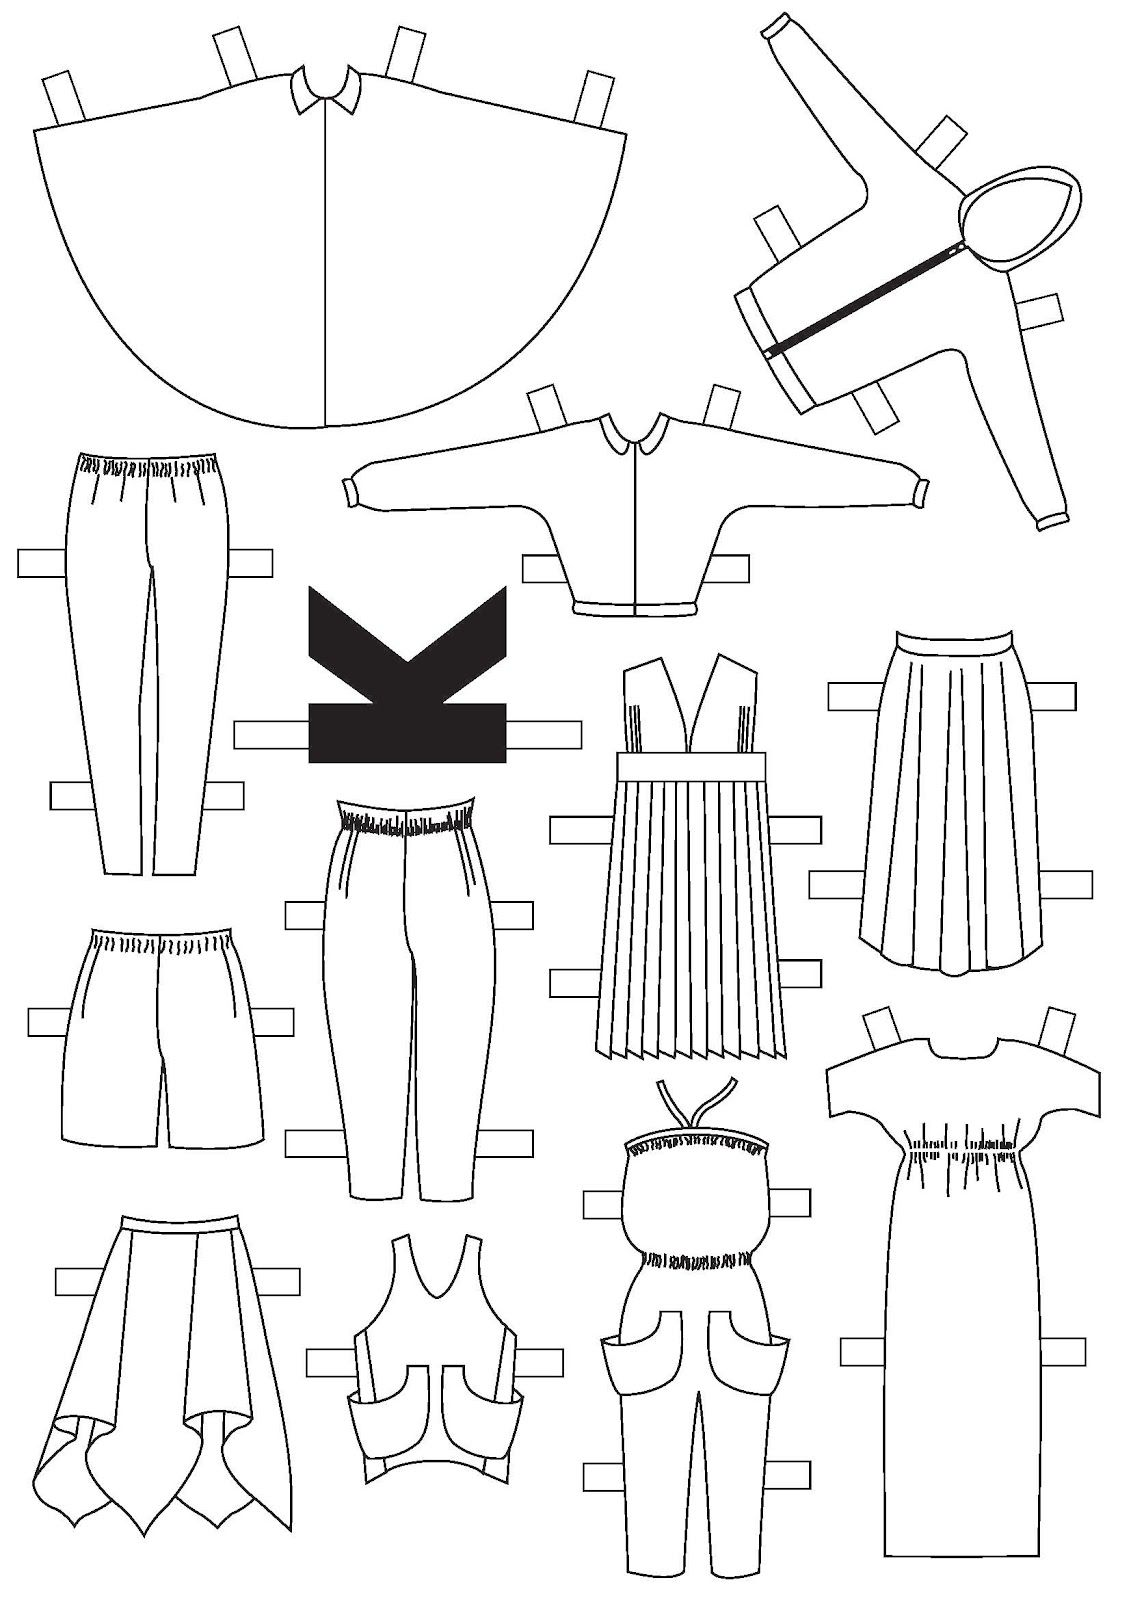 photo relating to Paper Doll Clothes Printable titled Do-it-yourself Couture Paper Doll Apparel Template SEWING AND FIBER